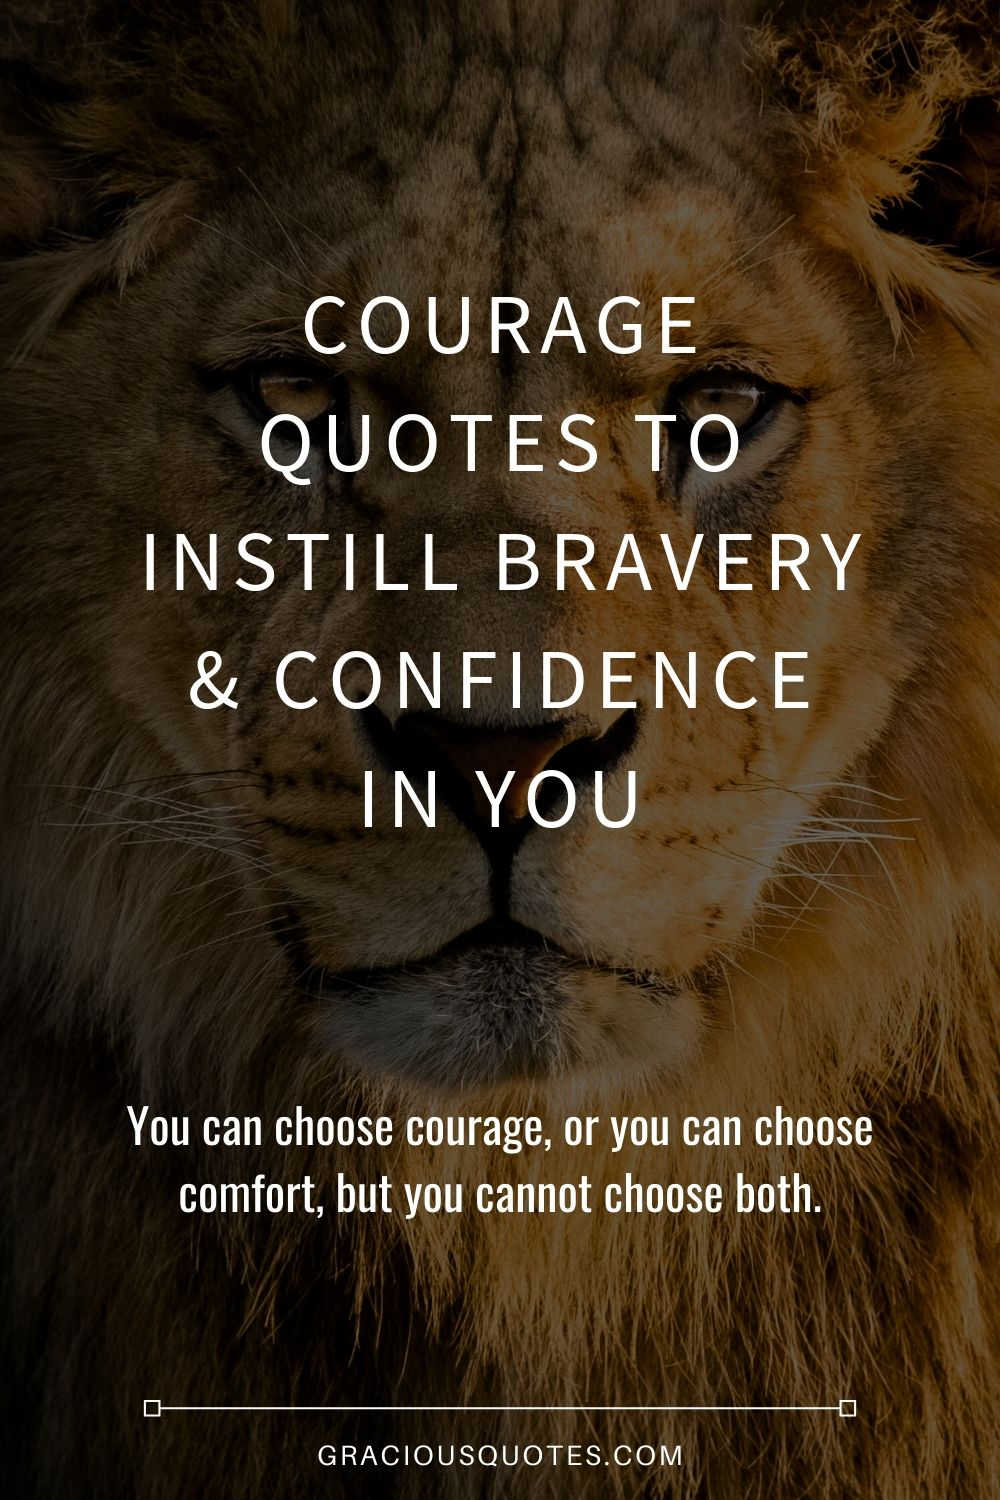 Courage-Quotes-to-Instill-Bravery-Confidence-in-You-Gracious-Quotes-updated-2